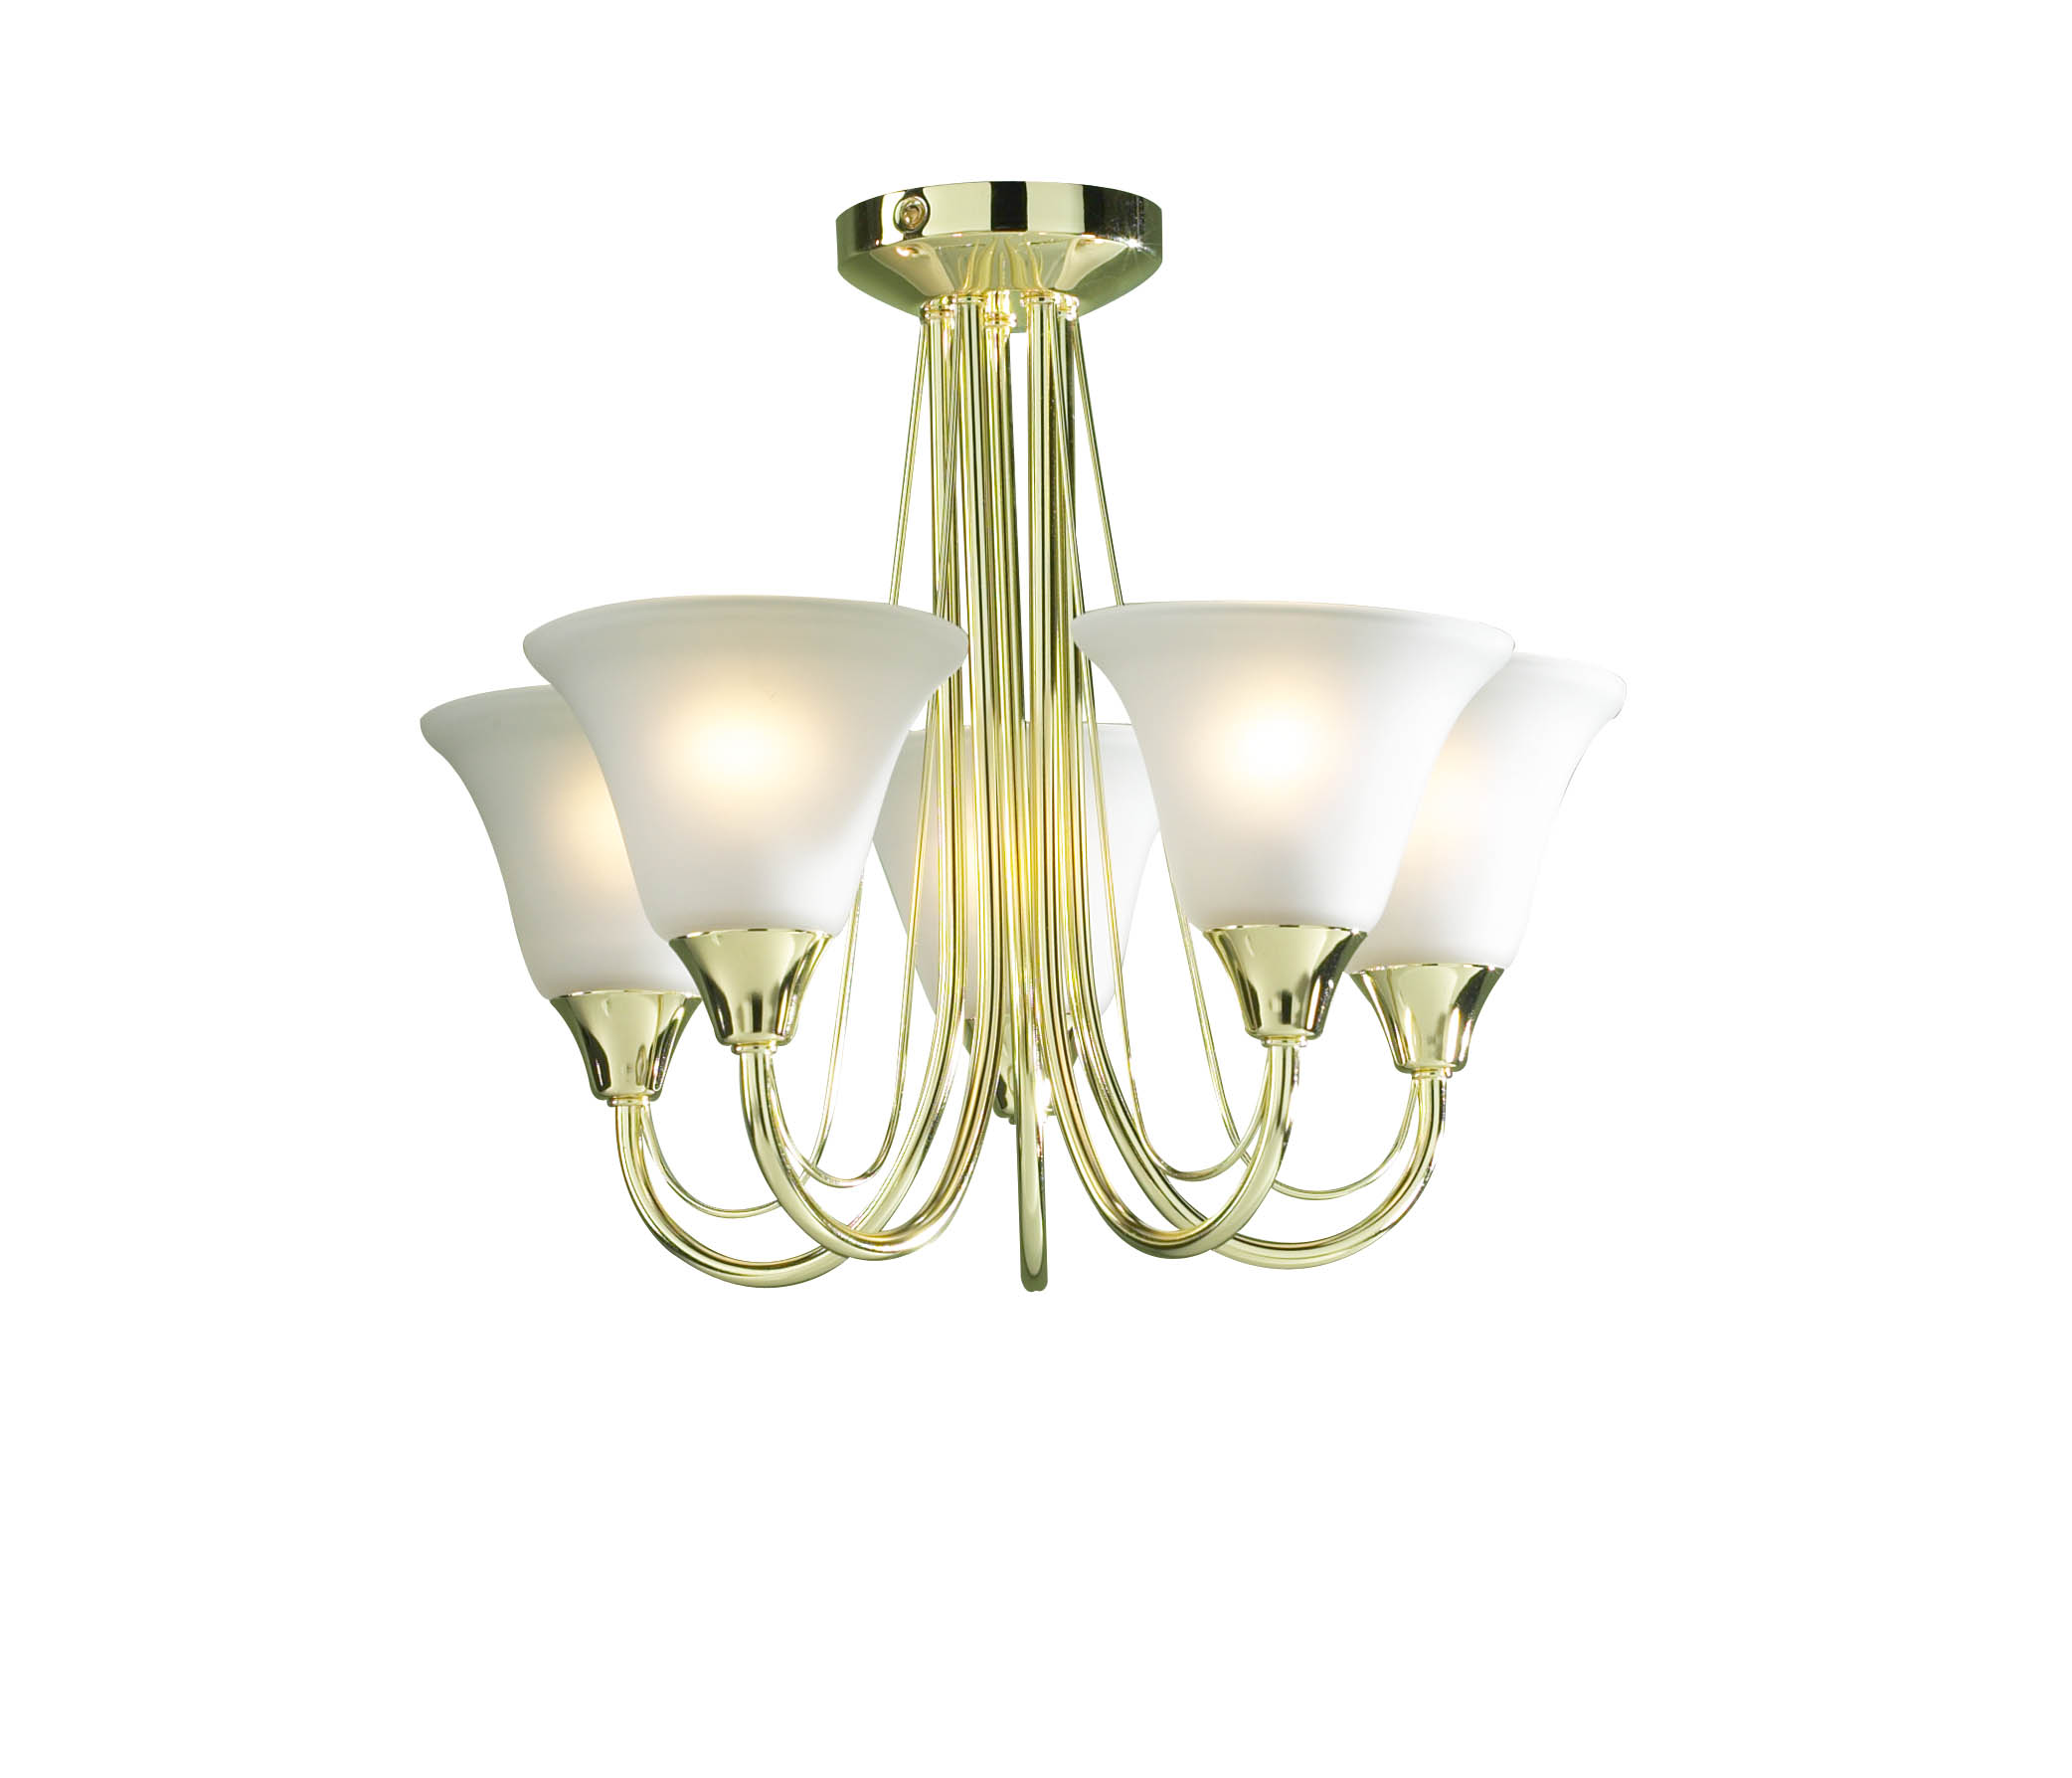 Derwent 5 light polished brass ceiling light 030260 der05 derwent 5 light polished brass ceiling light 030260 der05 mozeypictures